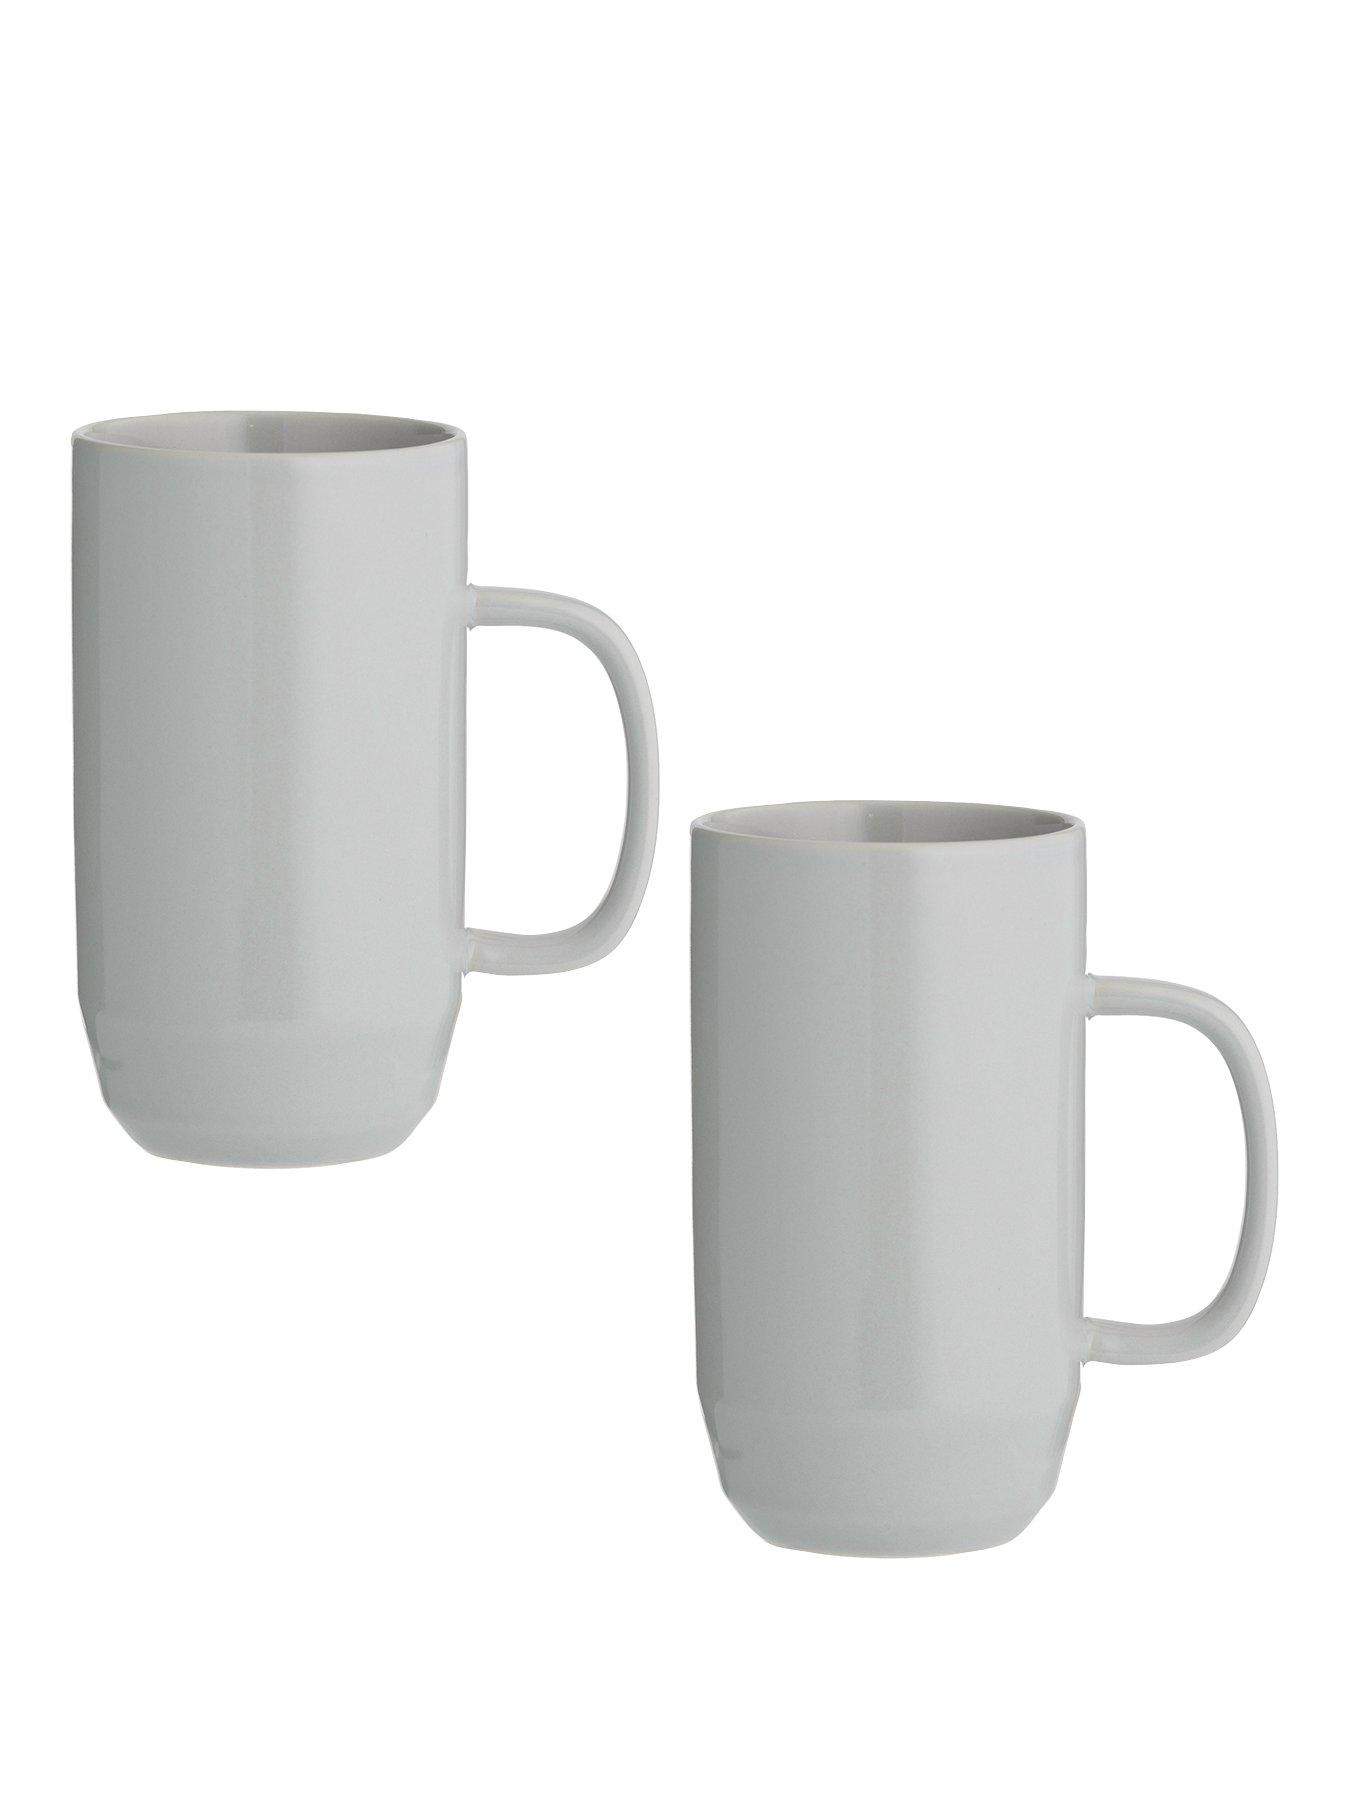 Grey | Mugs & cups | Drinkware | Home & garden | www